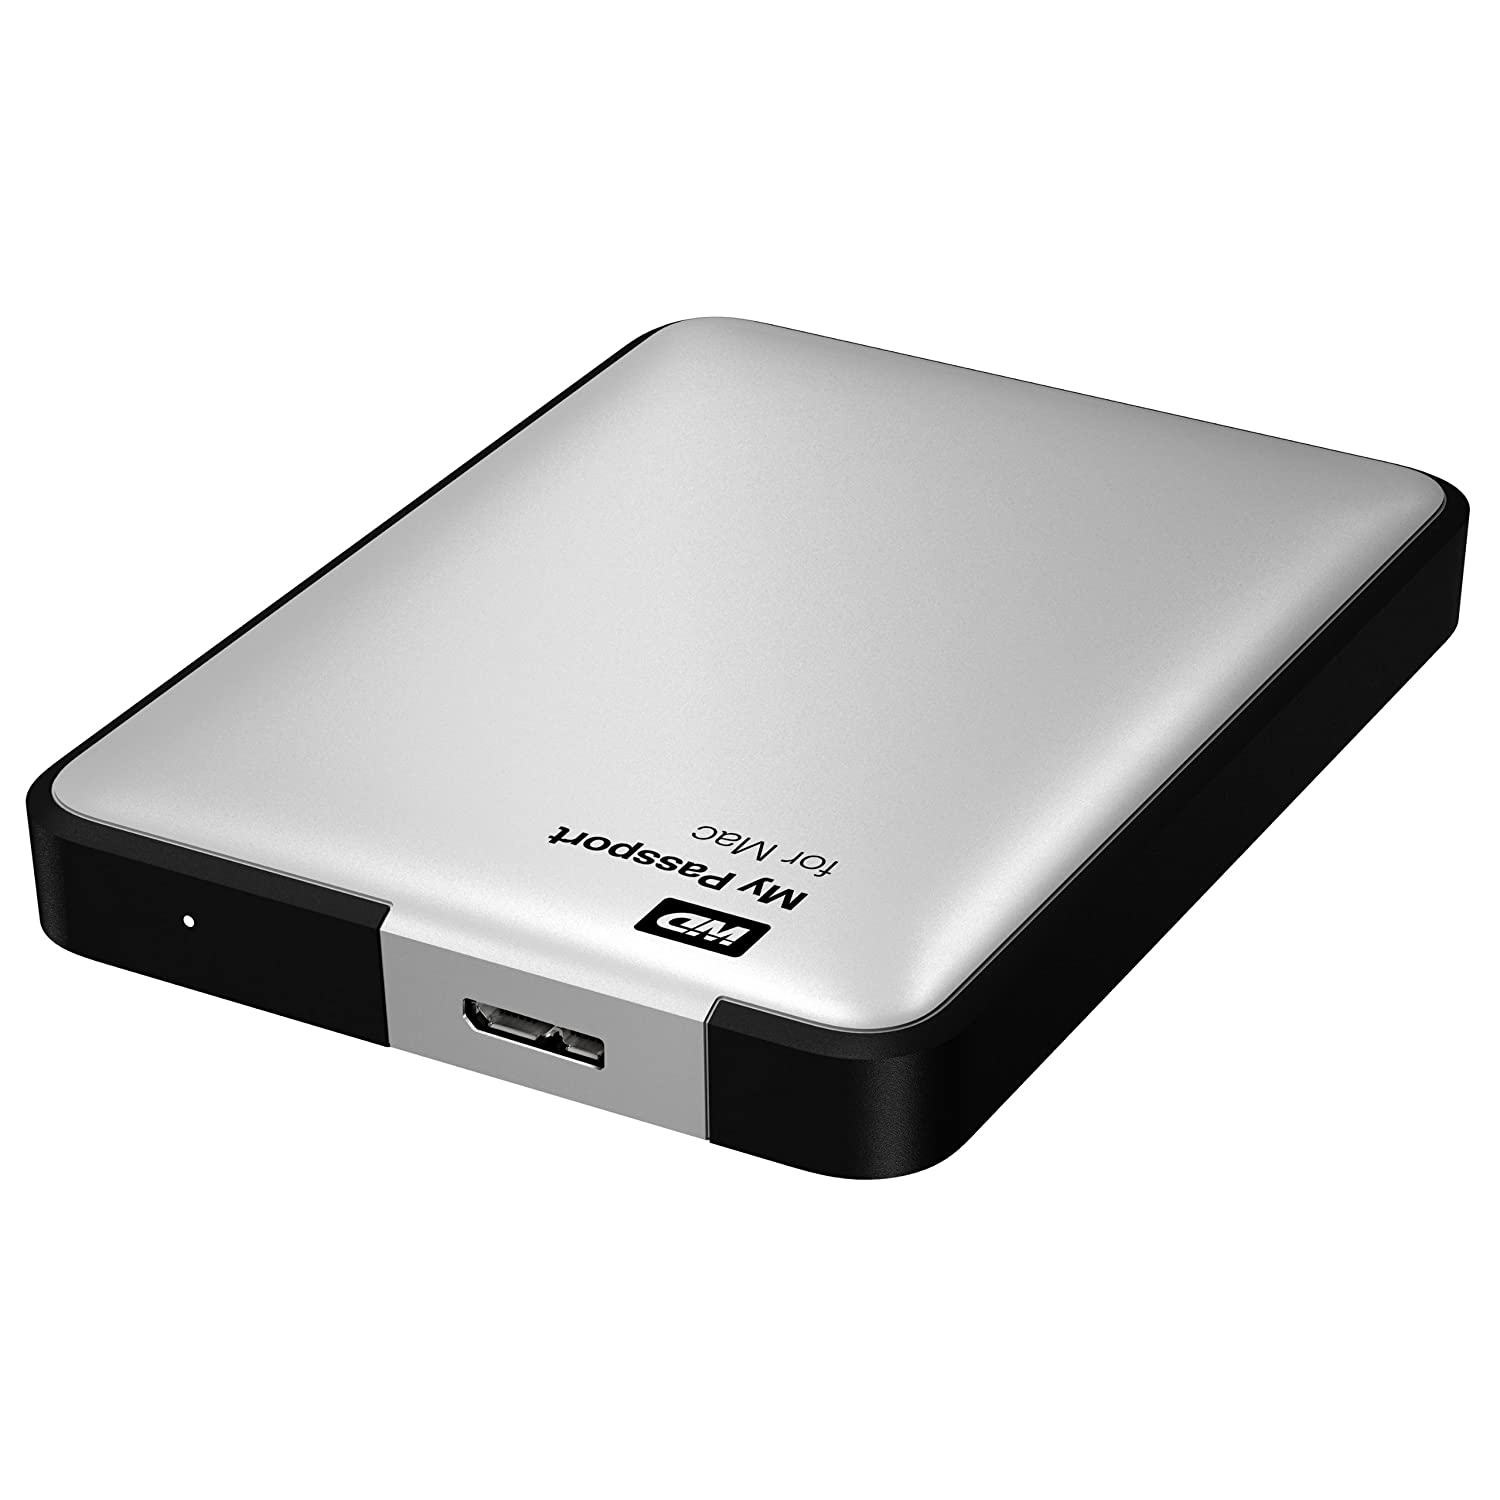 Western Digital My Passport for Mac 2 TB USB 3.0 Portable Hard Drive (WDBKKF0020BSL-NESN)